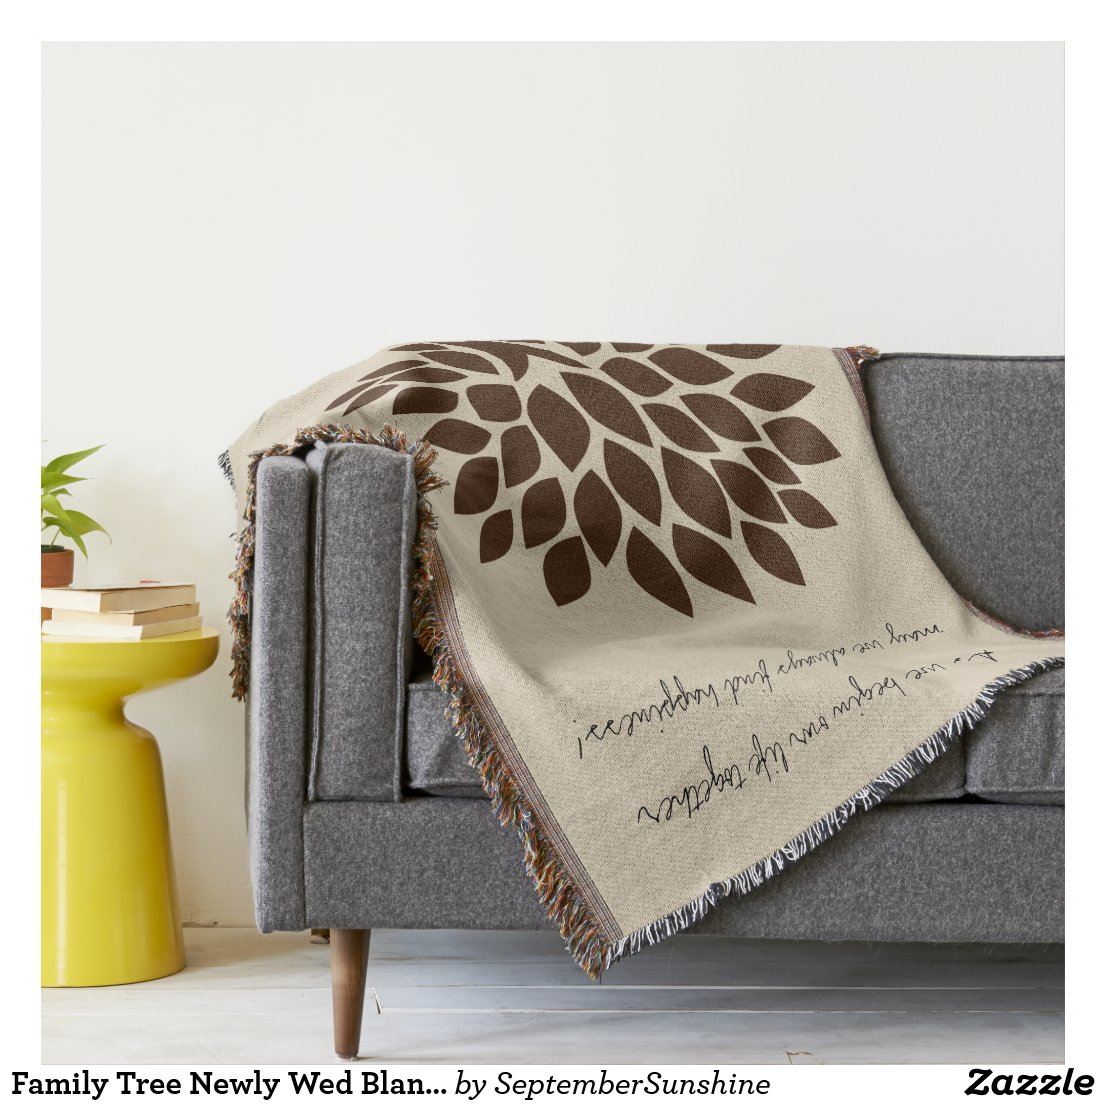 Family Tree Newly Wed Blanket